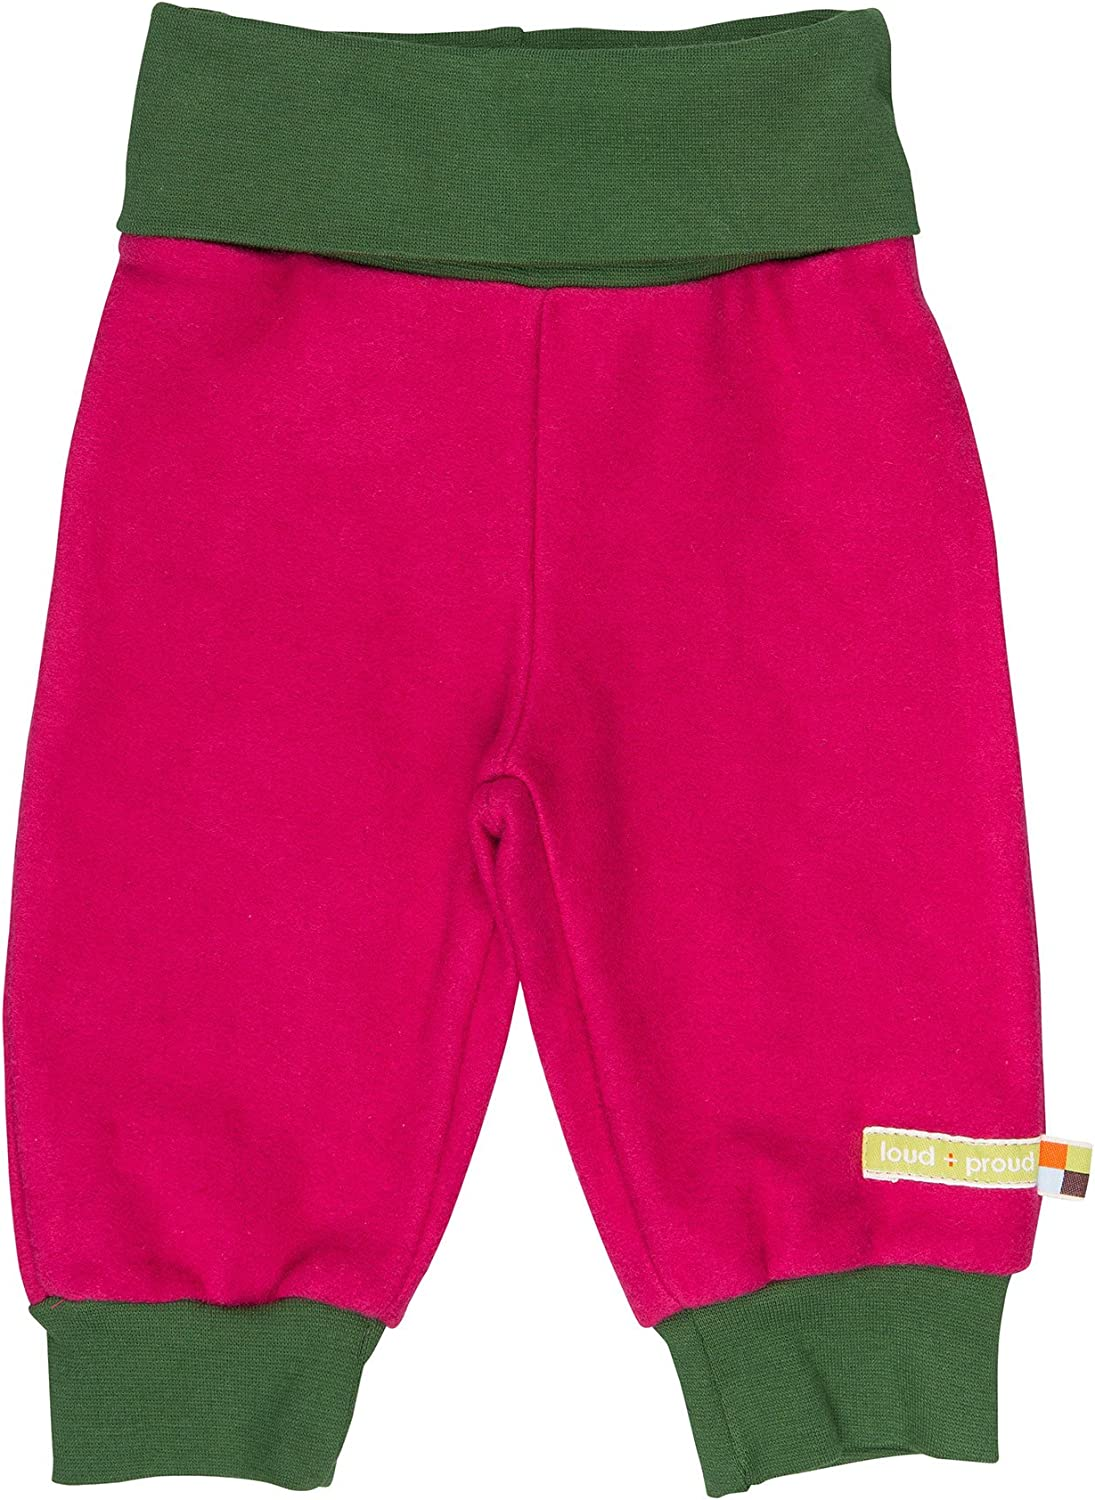 loud proud Baby Hose Fleece Trousers